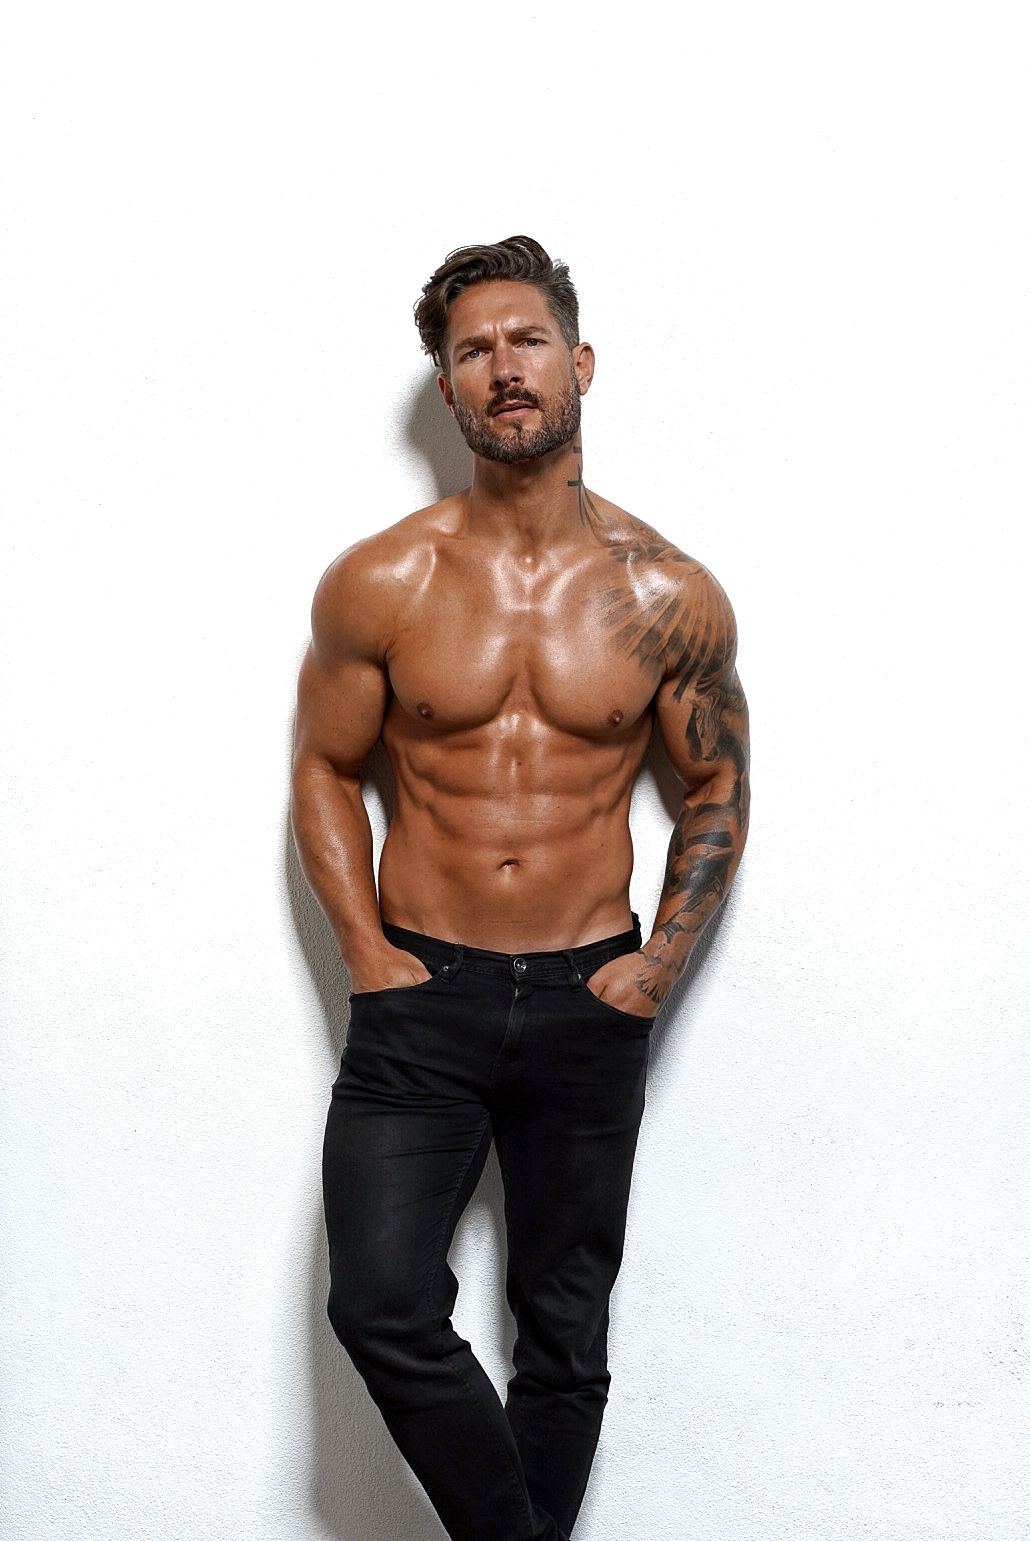 How to get the body of a male model